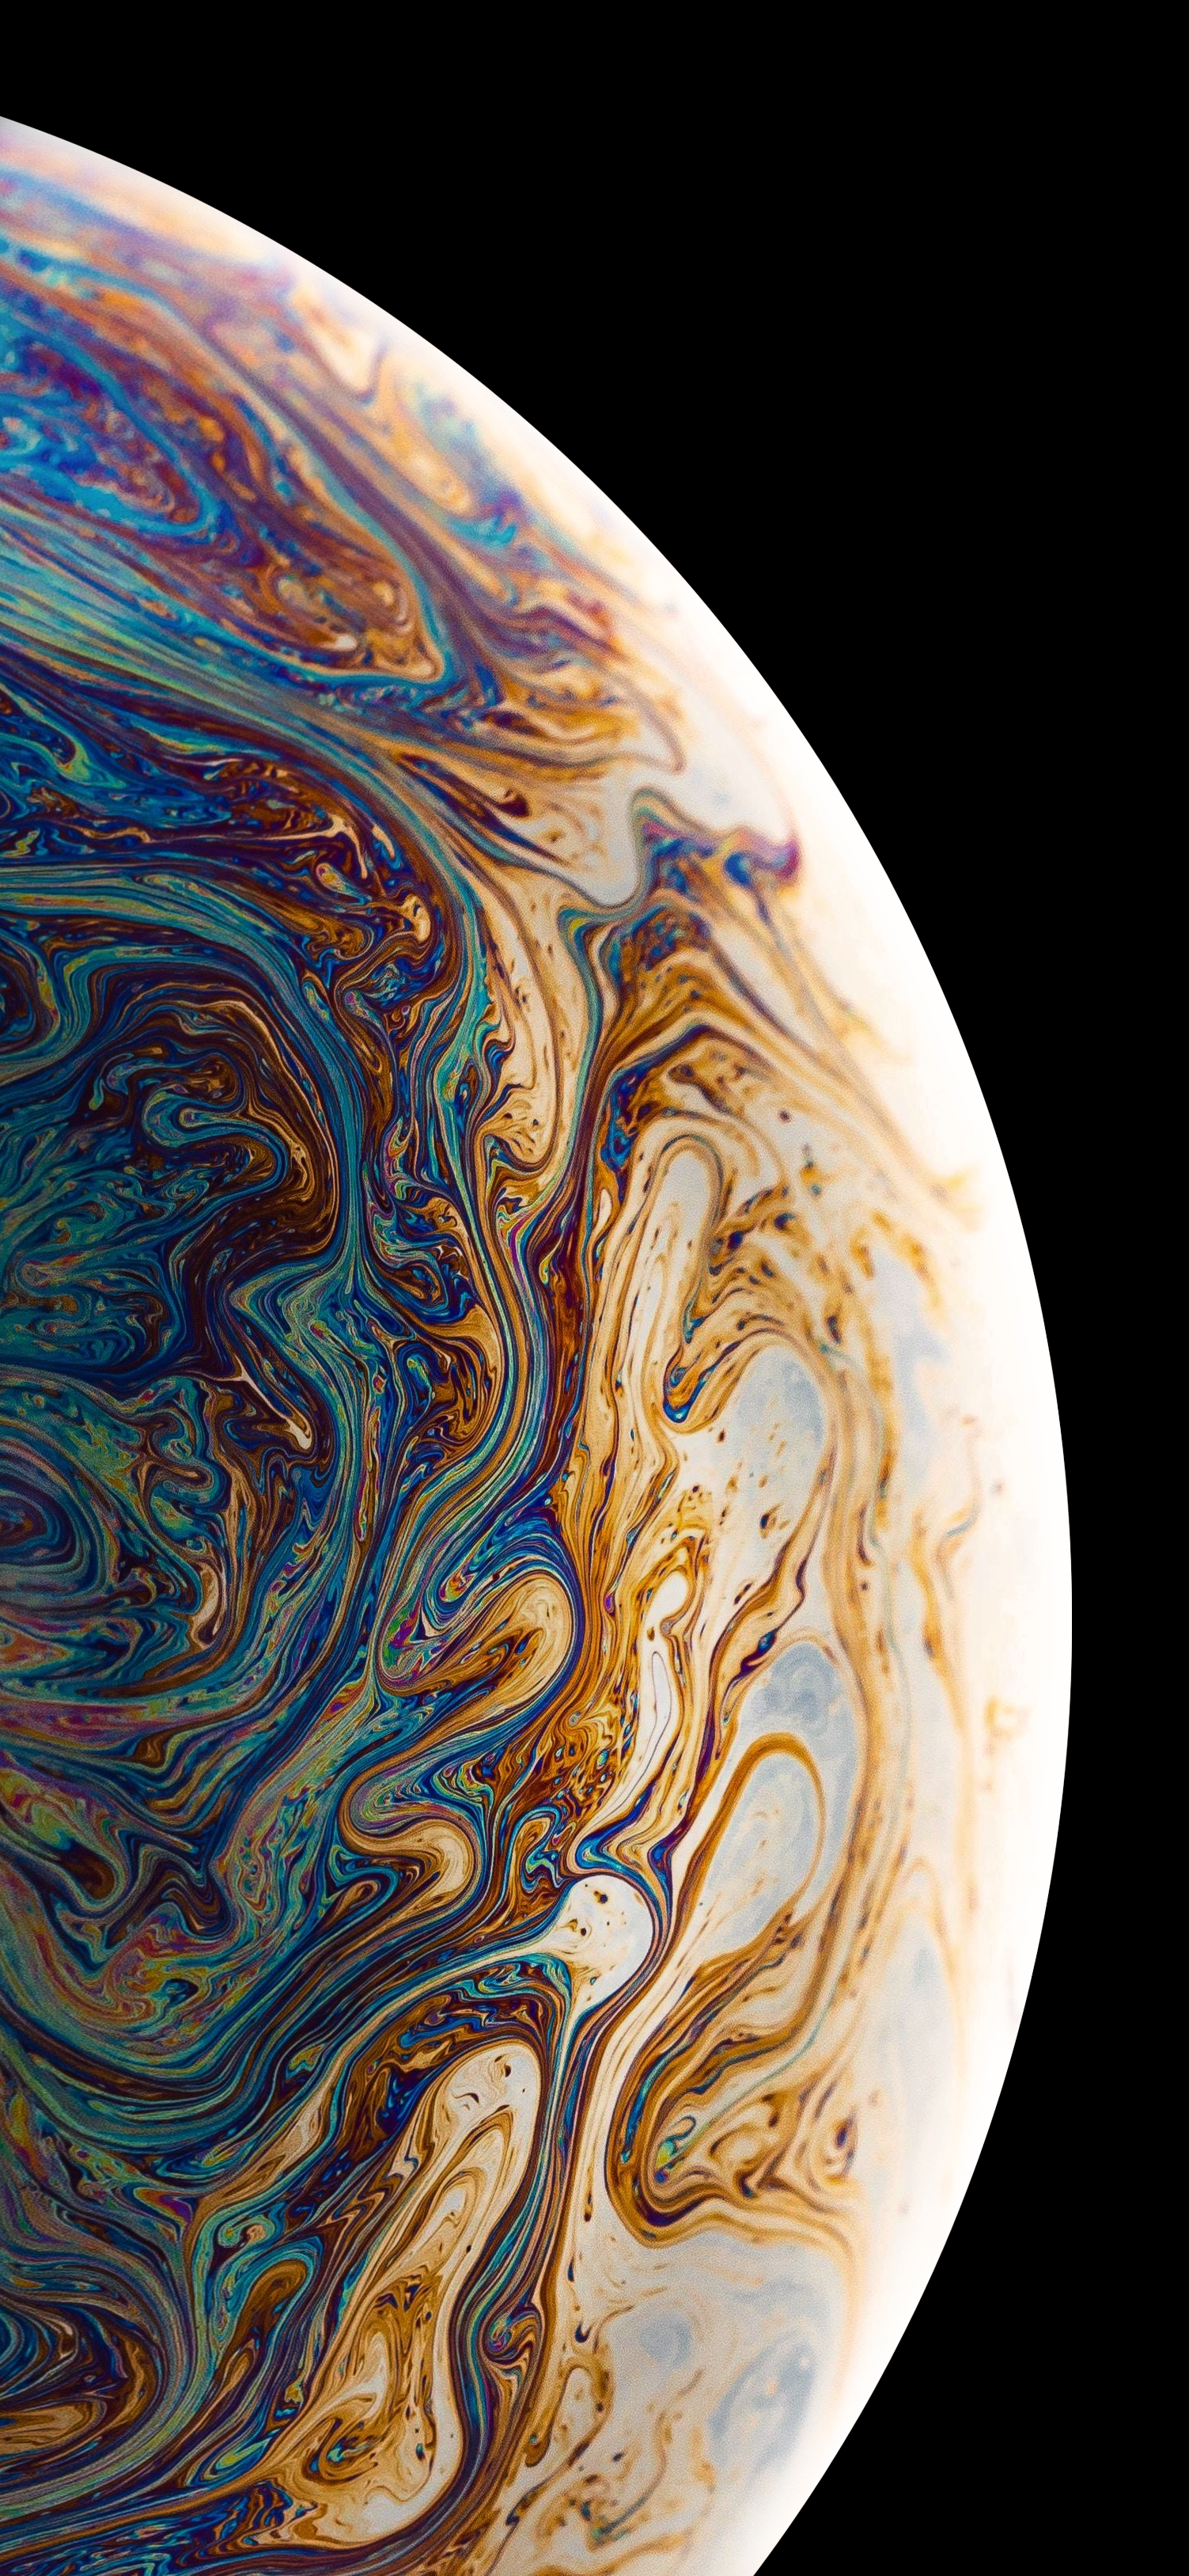 54 Iphone 11 Wallpapers On Wallpapersafari